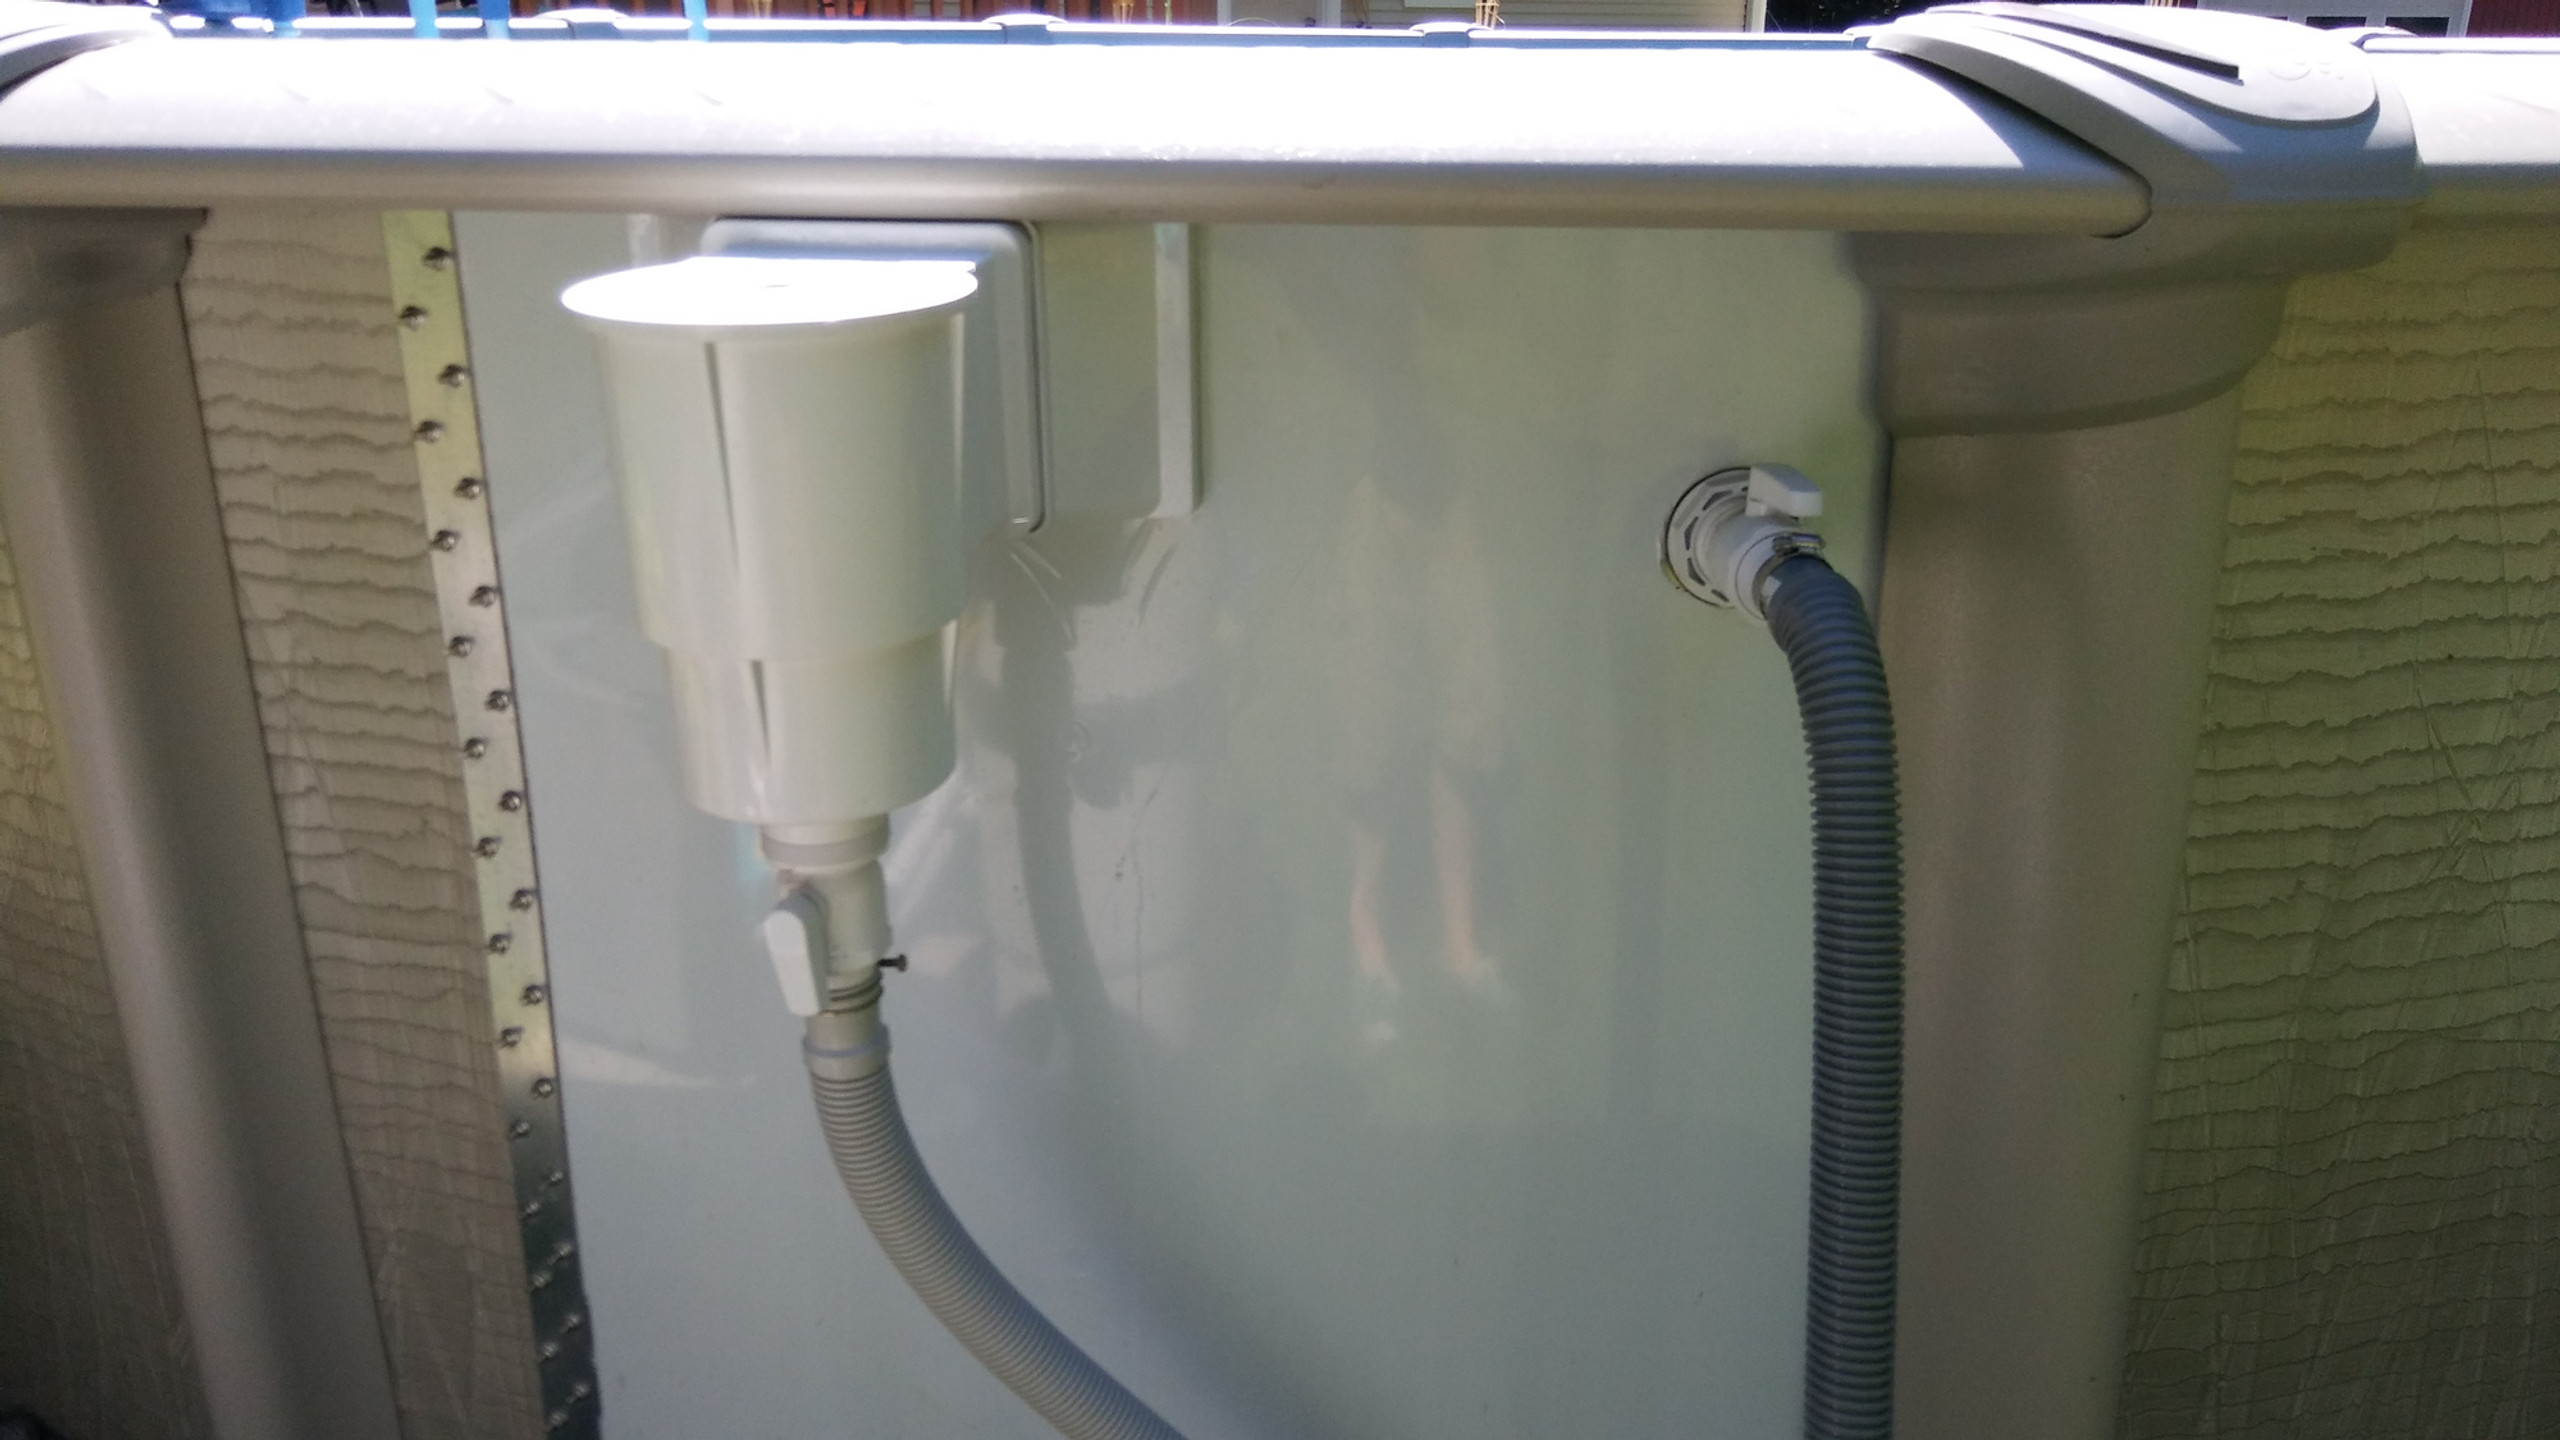 Once the pool is filled to the appropriate level we then install the skimmer, return and the pump and filter system. We also install ball valves on the skimmer and return to increase the ease of servicing and maintaining your pool.